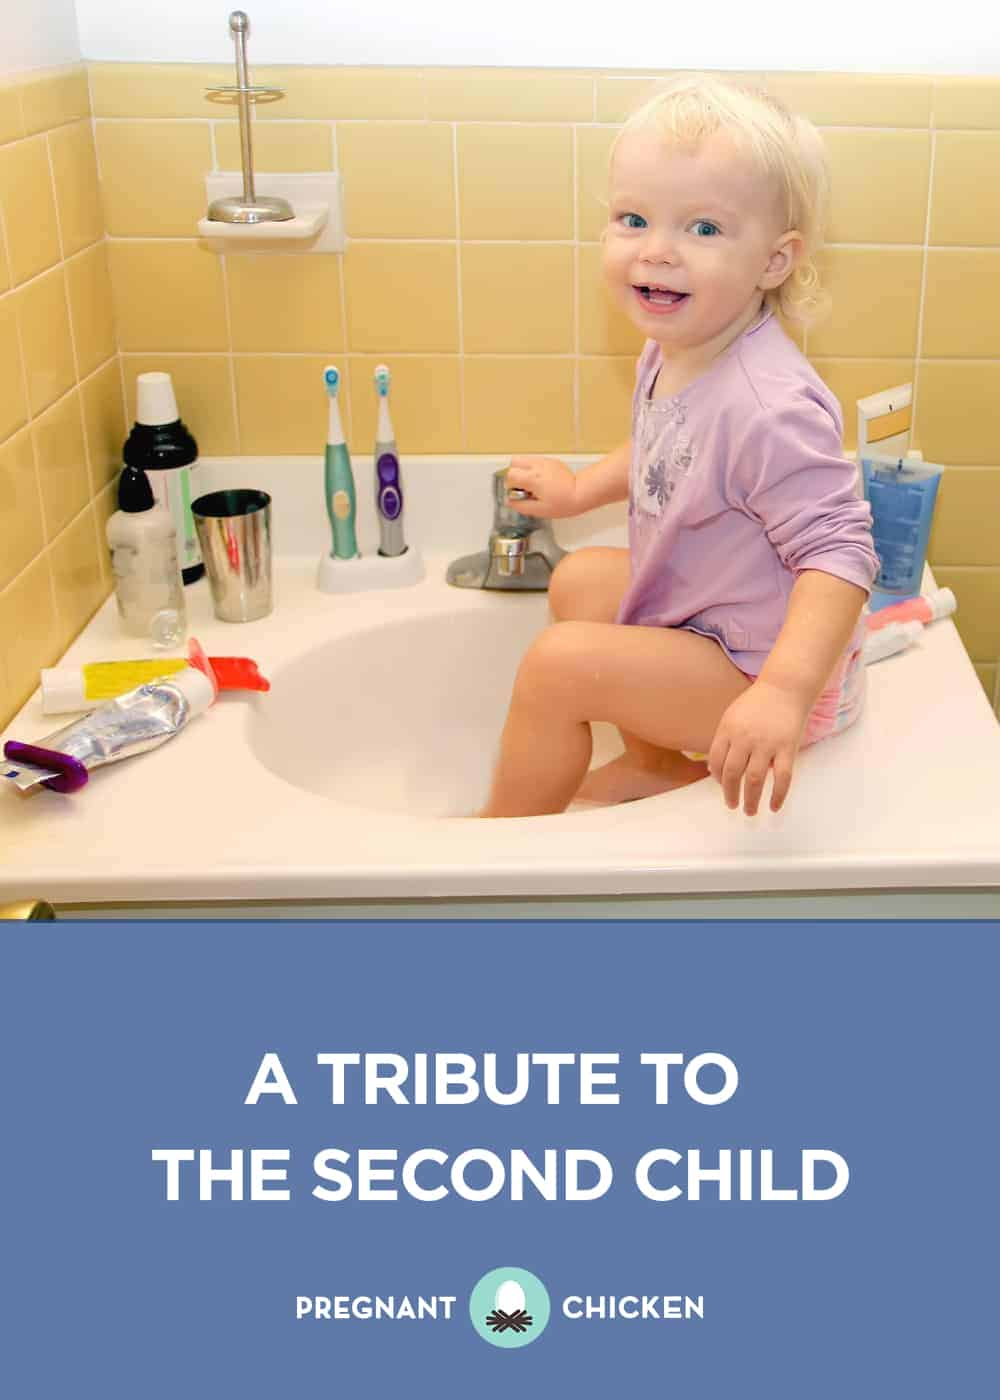 A Tribute to the Second Child